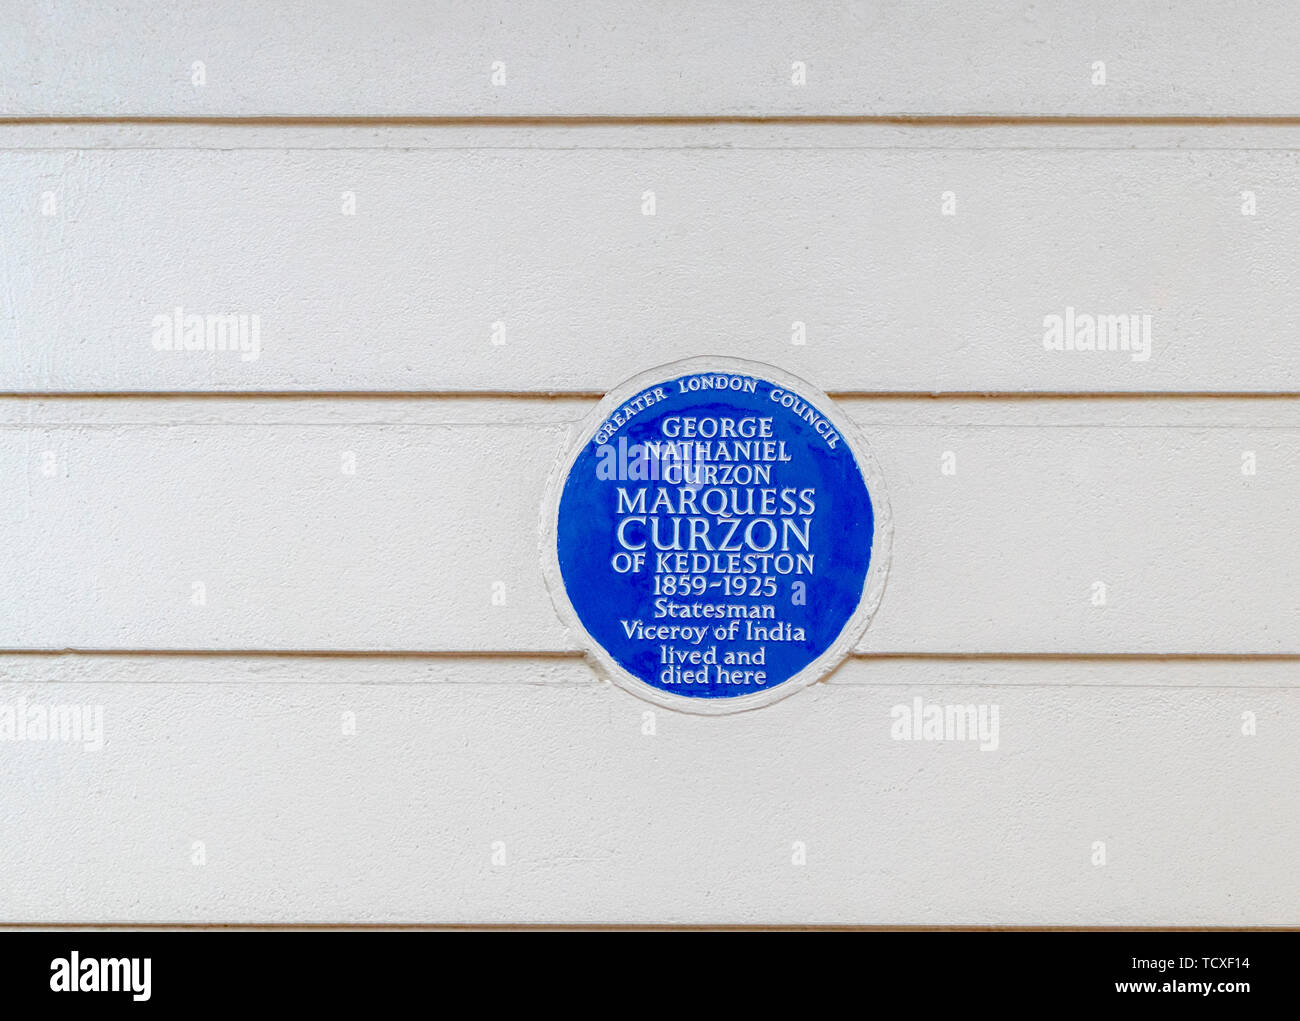 Blue plaque, Marquess Curzon of Kedleston 1859-1925, Viceroy of India, who lived and died in Carlton House Terrace, City of Westminster, London, SW1 Stock Photo